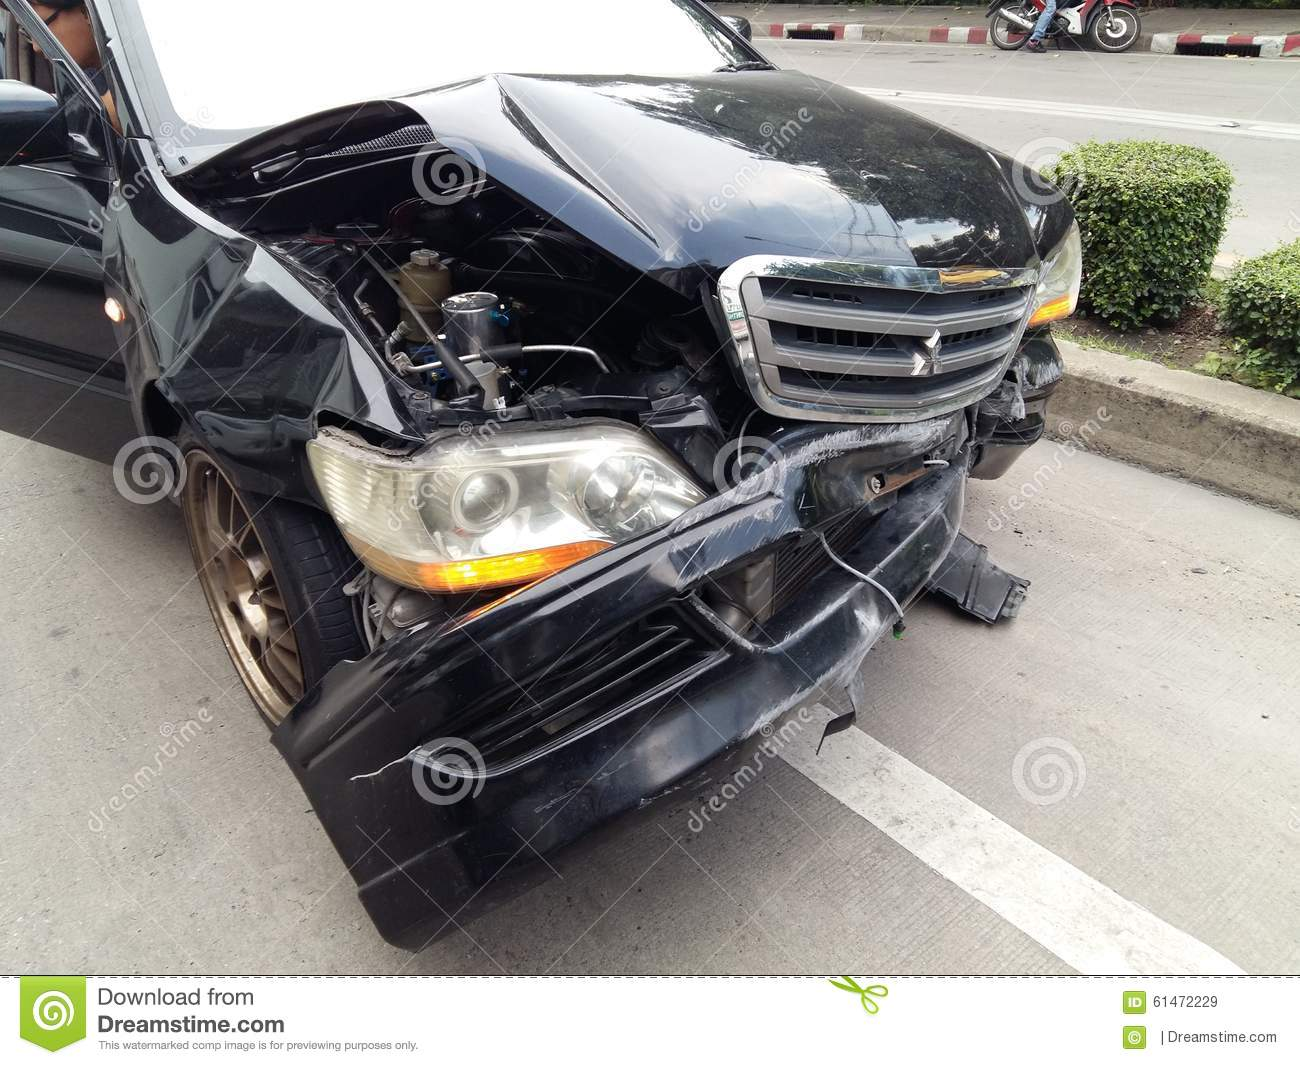 Car accident editorial stock image. Image of automobile - 61472229